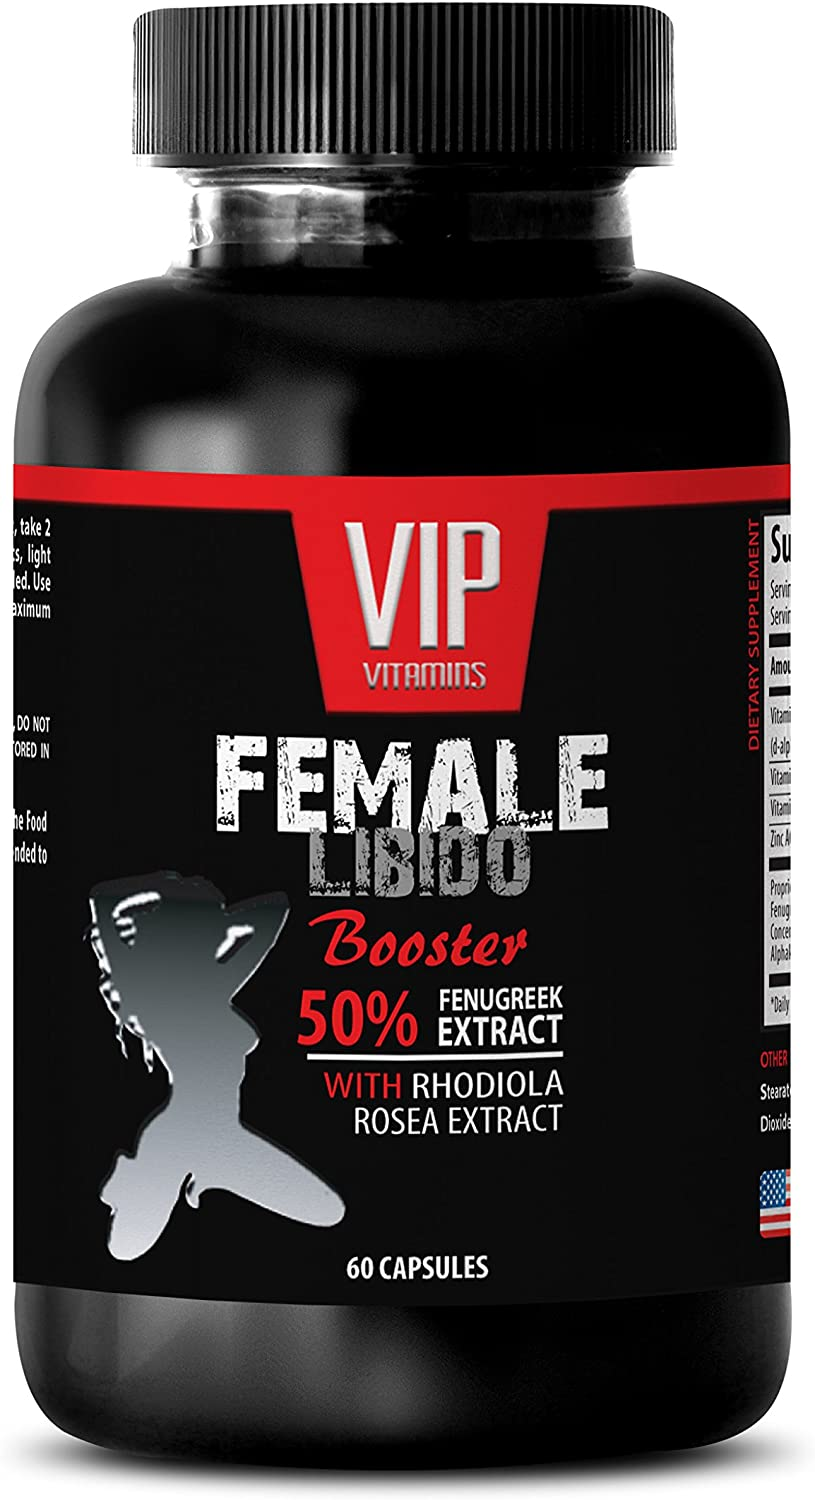 Increase libido for Women - Female LIBIDO Booster - Fenugreek Extract Testosterone- 1 Bottle 60 Capsules